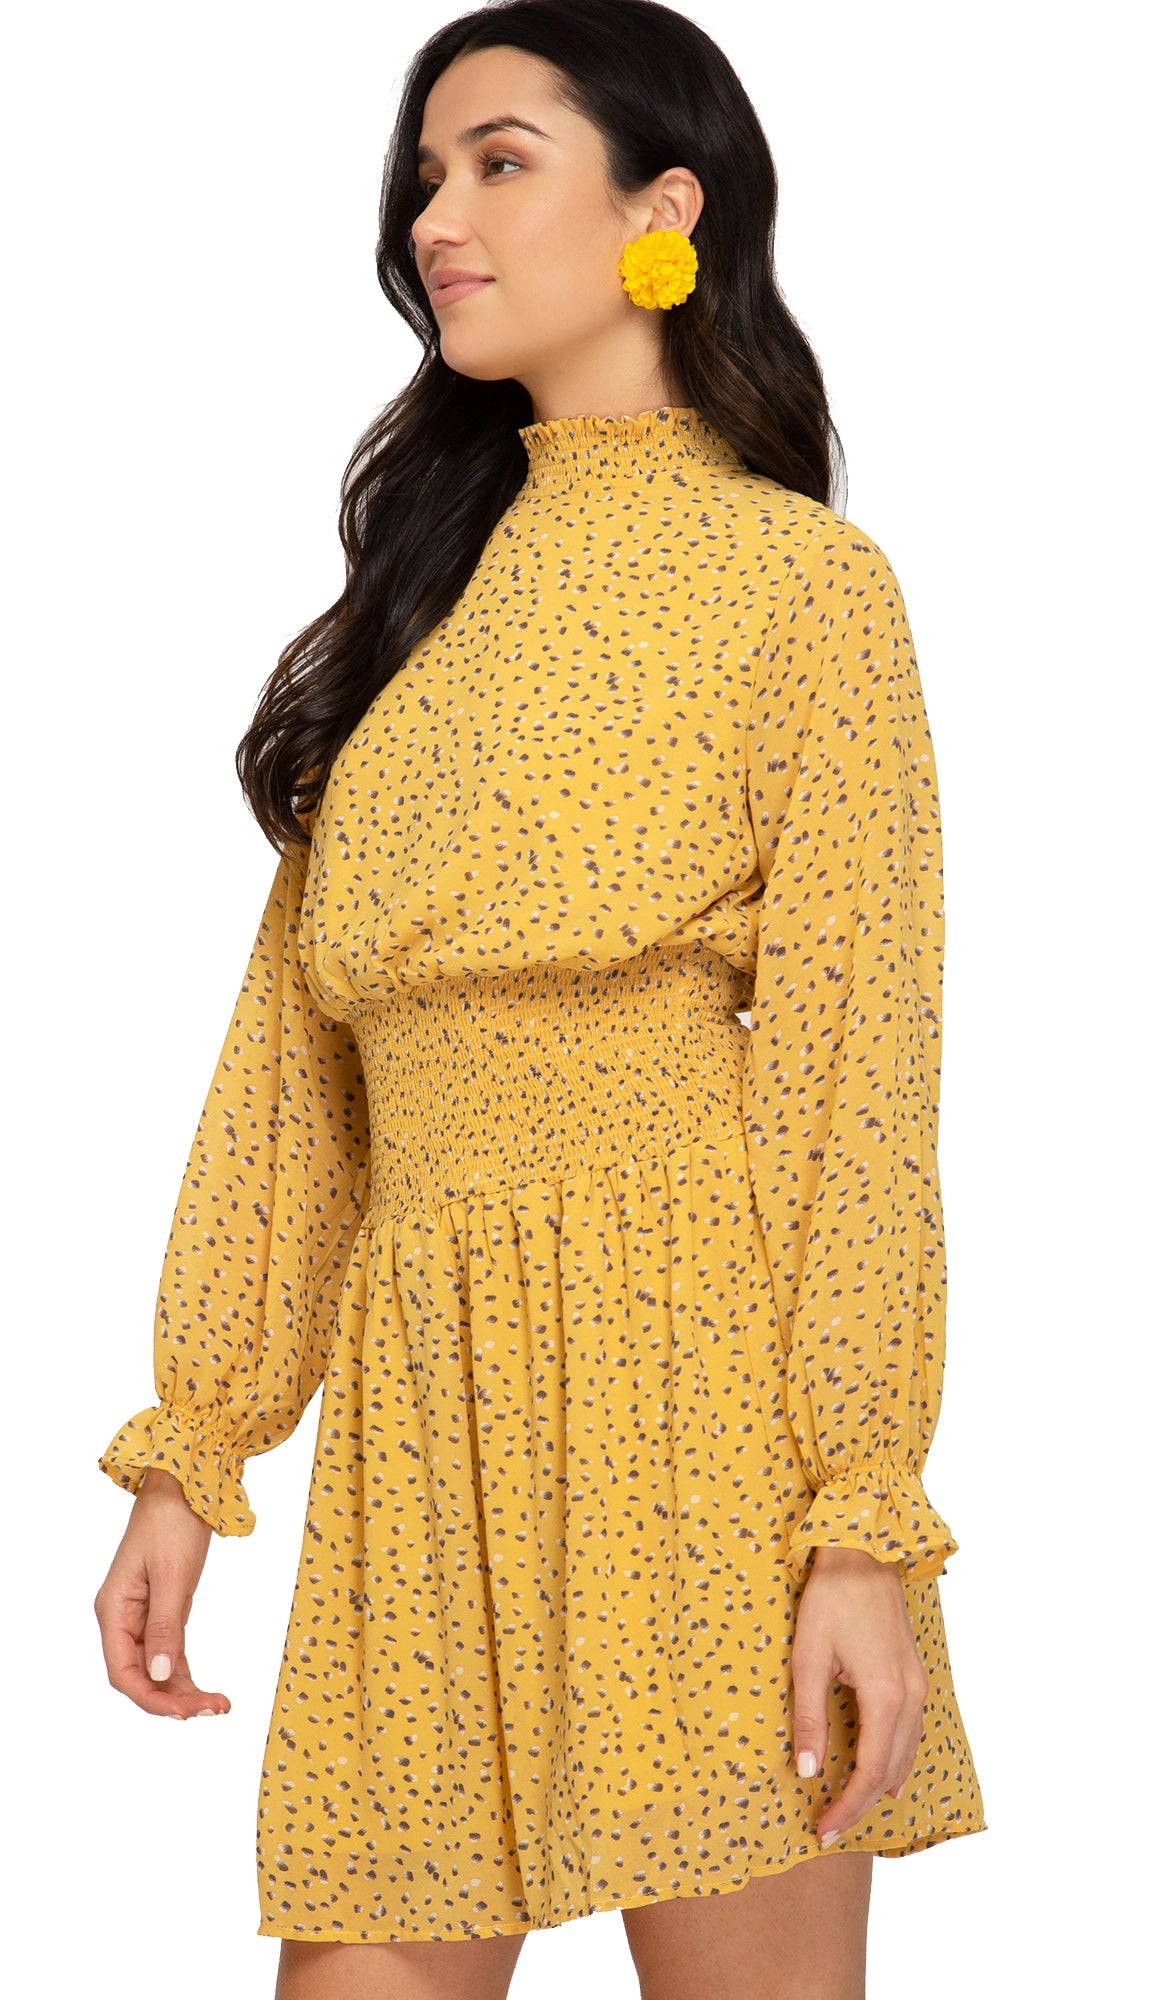 Brighten My Day Dress- Yellow